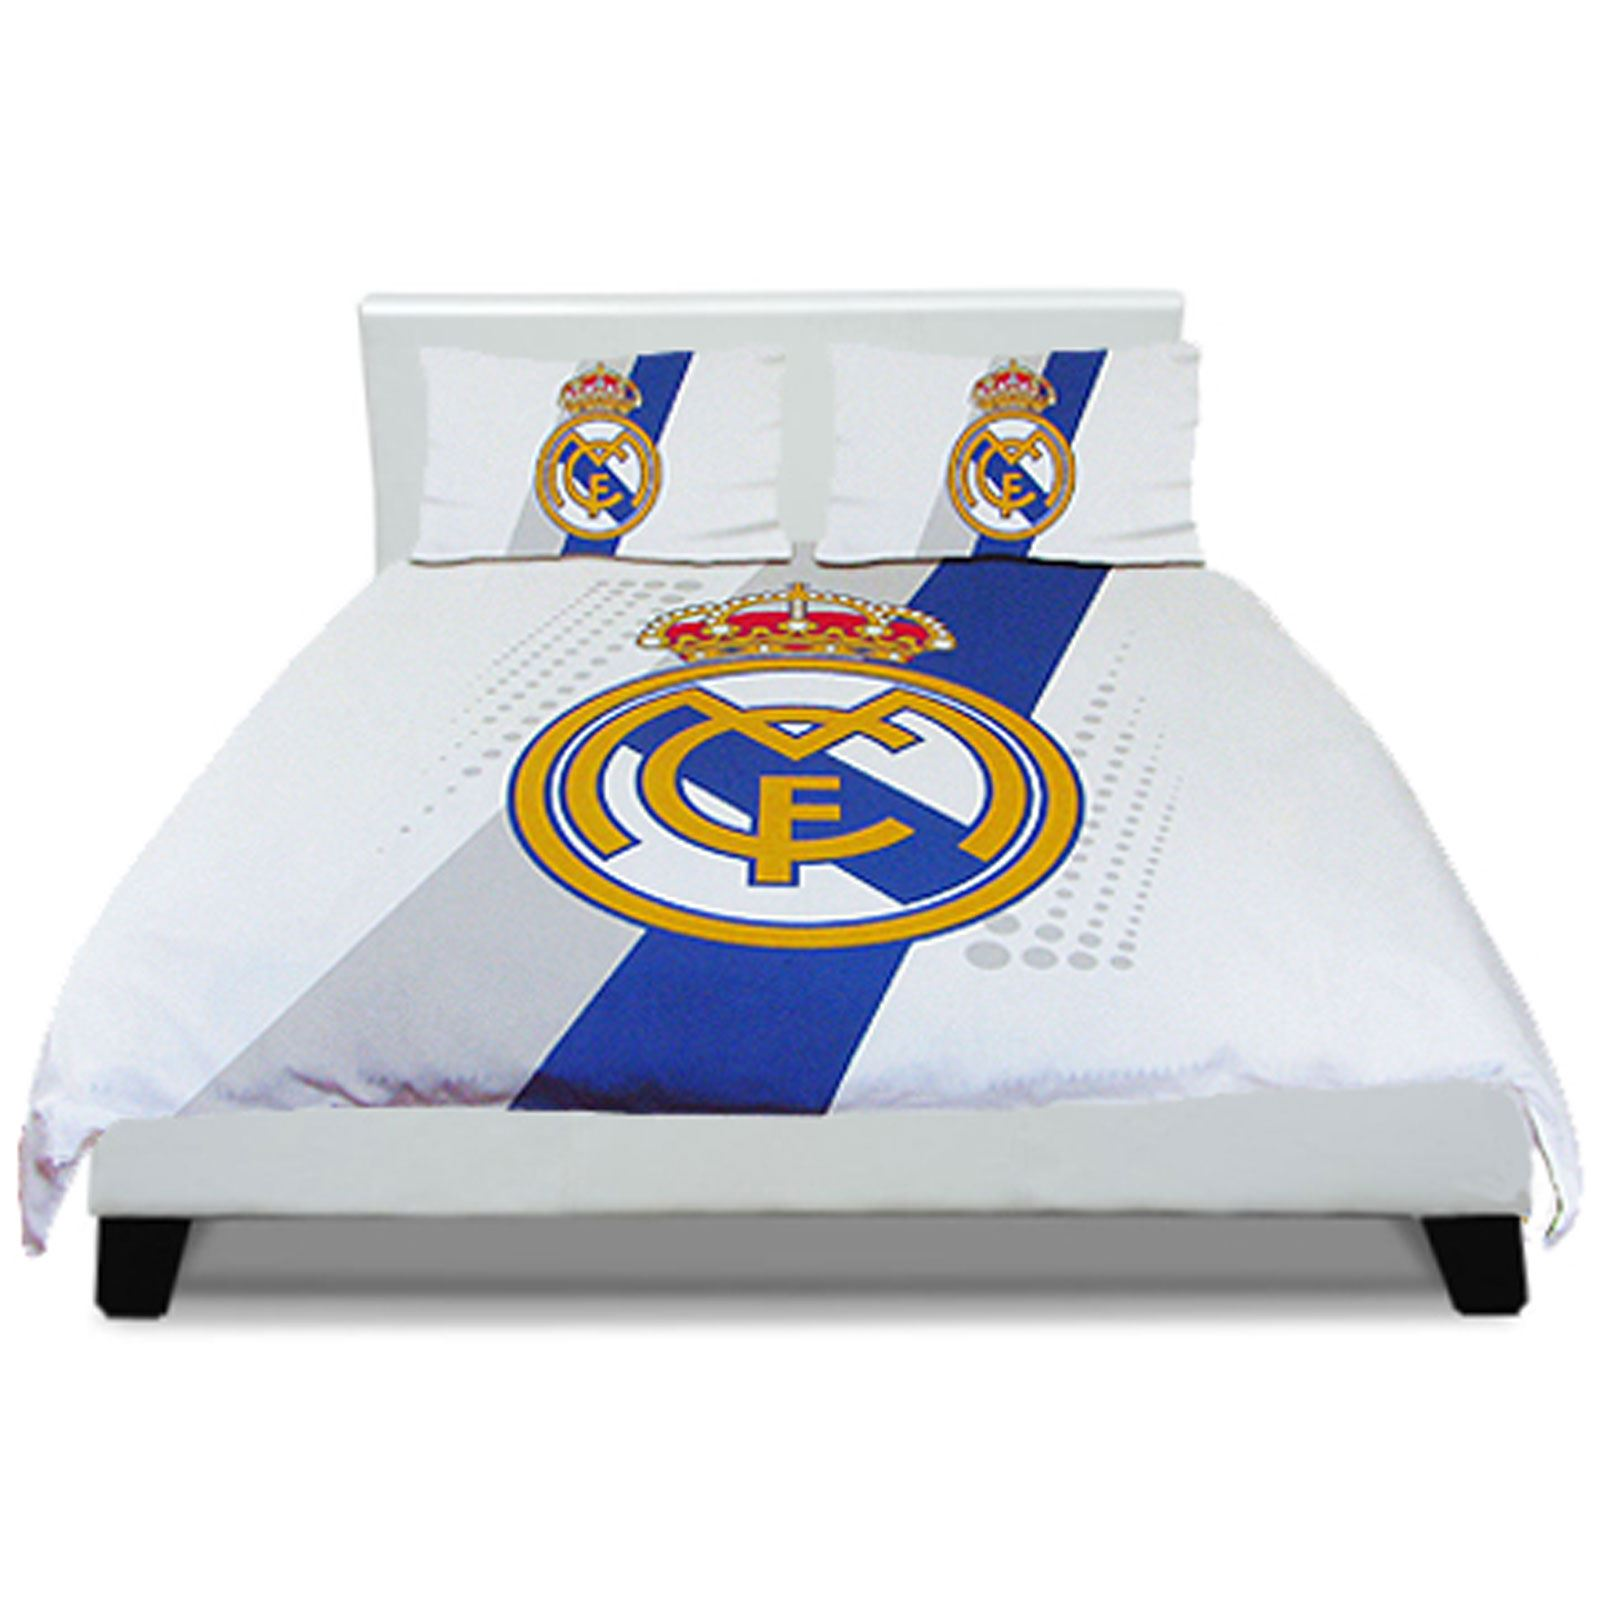 single and fc duvet cover bedding sets official football club designs ebay